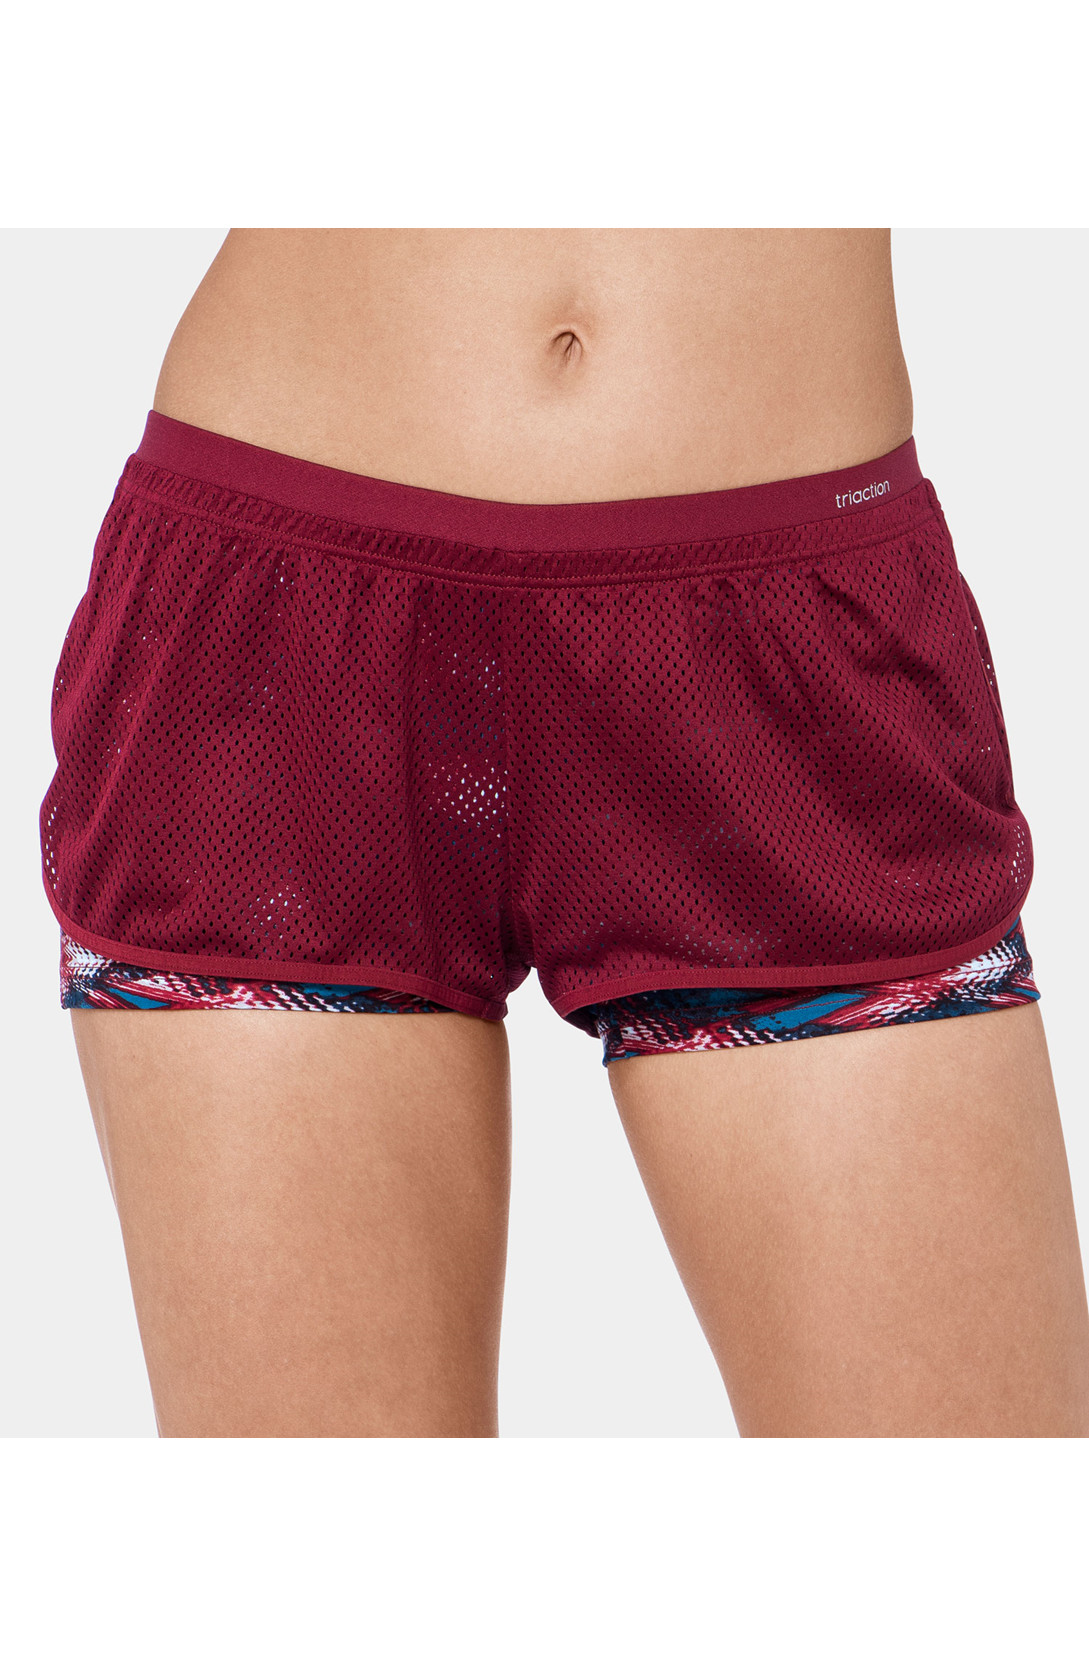 TRIUMPH TRI. THE FIT-STER SHORT 01 R